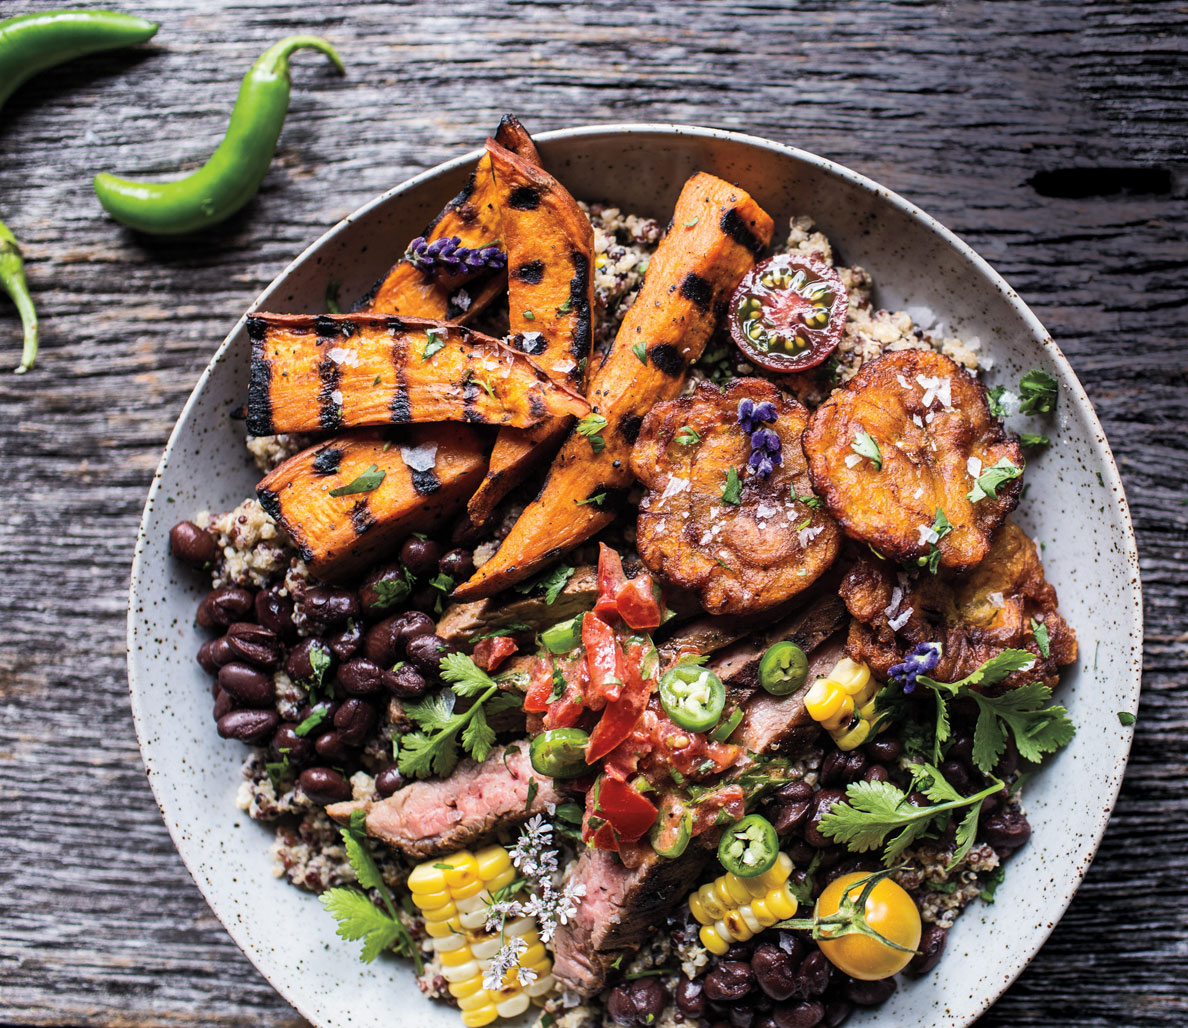 Meal Prep: 4 Muscle-Building Bowl Recipes to Make for Lunch or Dinner